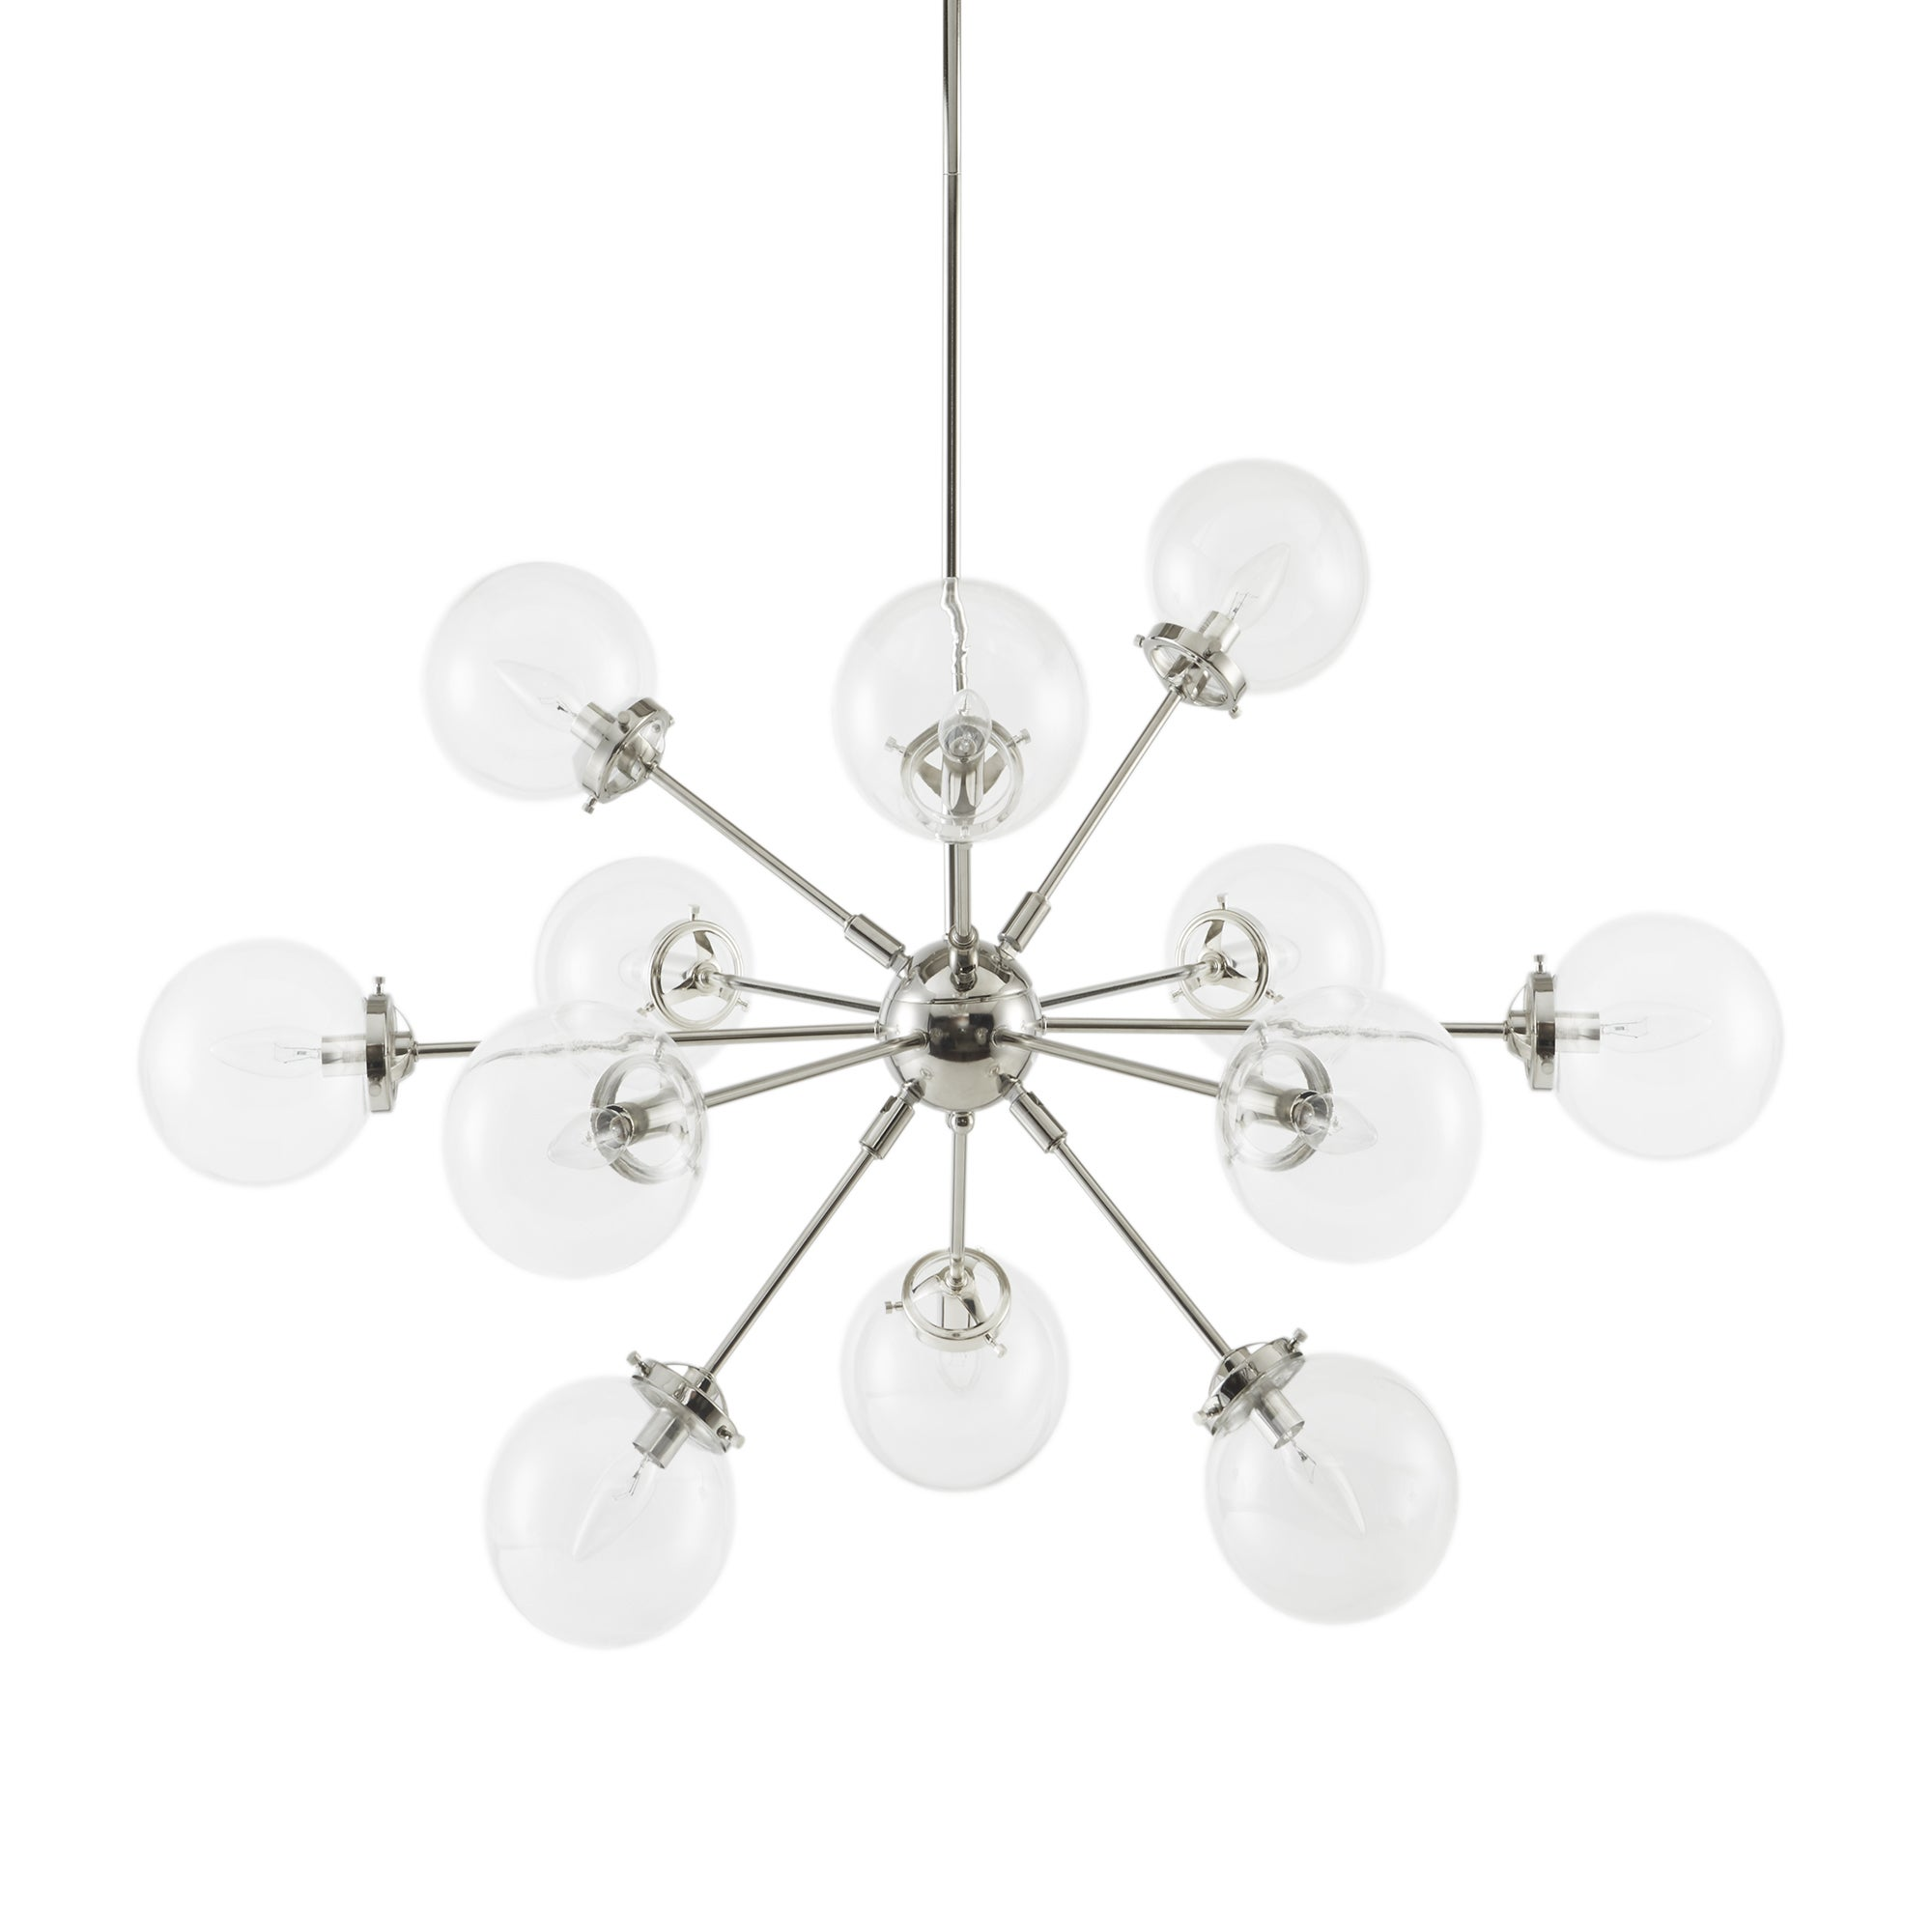 Inkivy paige silver chandelier free shipping today overstock inkivy paige silver chandelier free shipping today overstock 26325243 mozeypictures Images